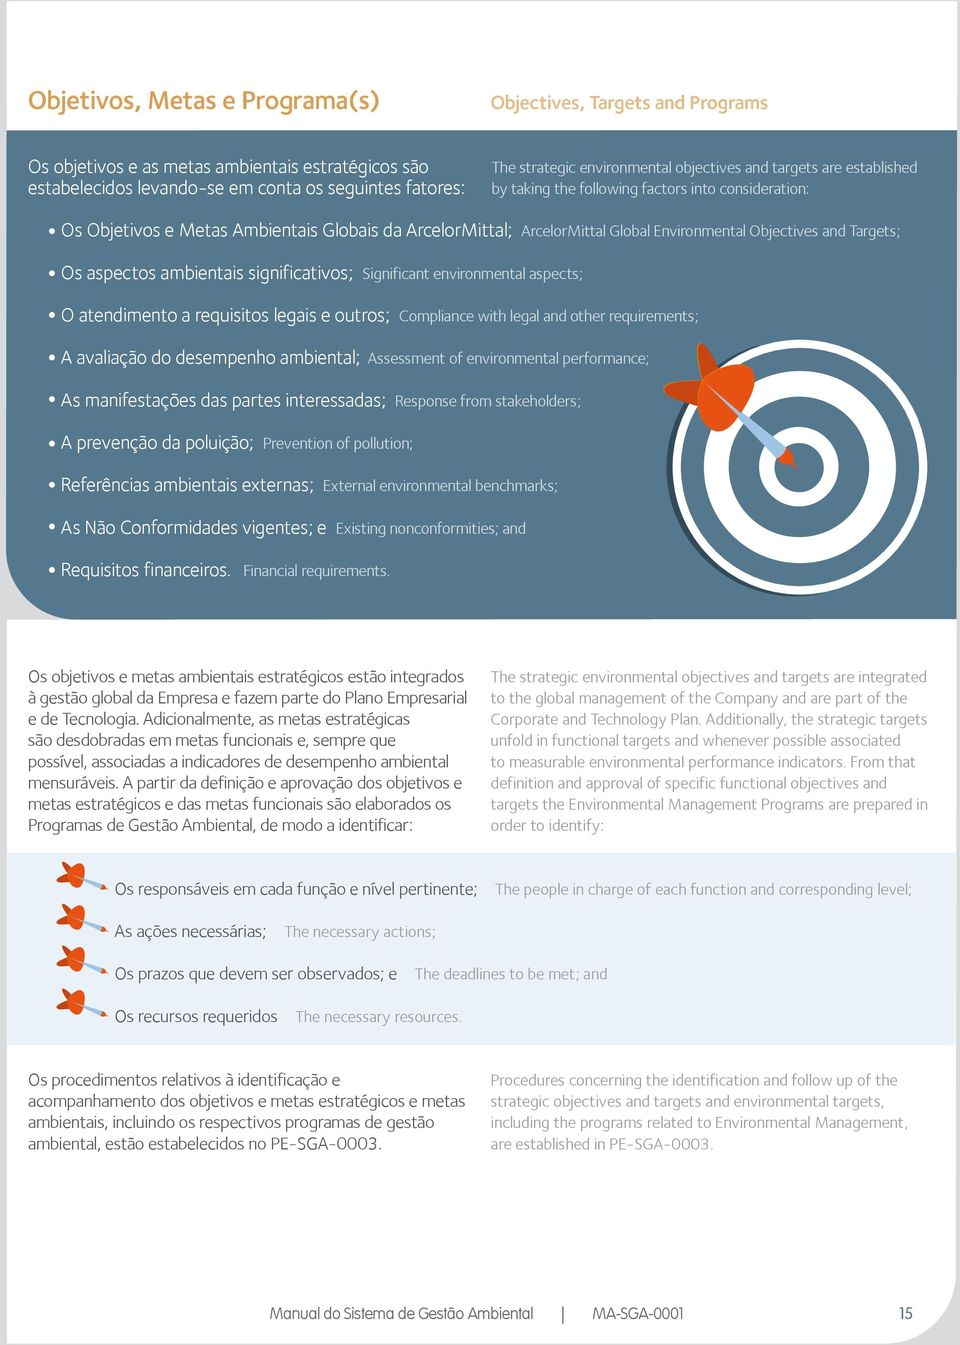 Targets; Os aspectos ambientais significativos; Significant environmental aspects; O atendimento a requisitos legais e outros; Compliance with legal and other requirements; A avaliação do desempenho